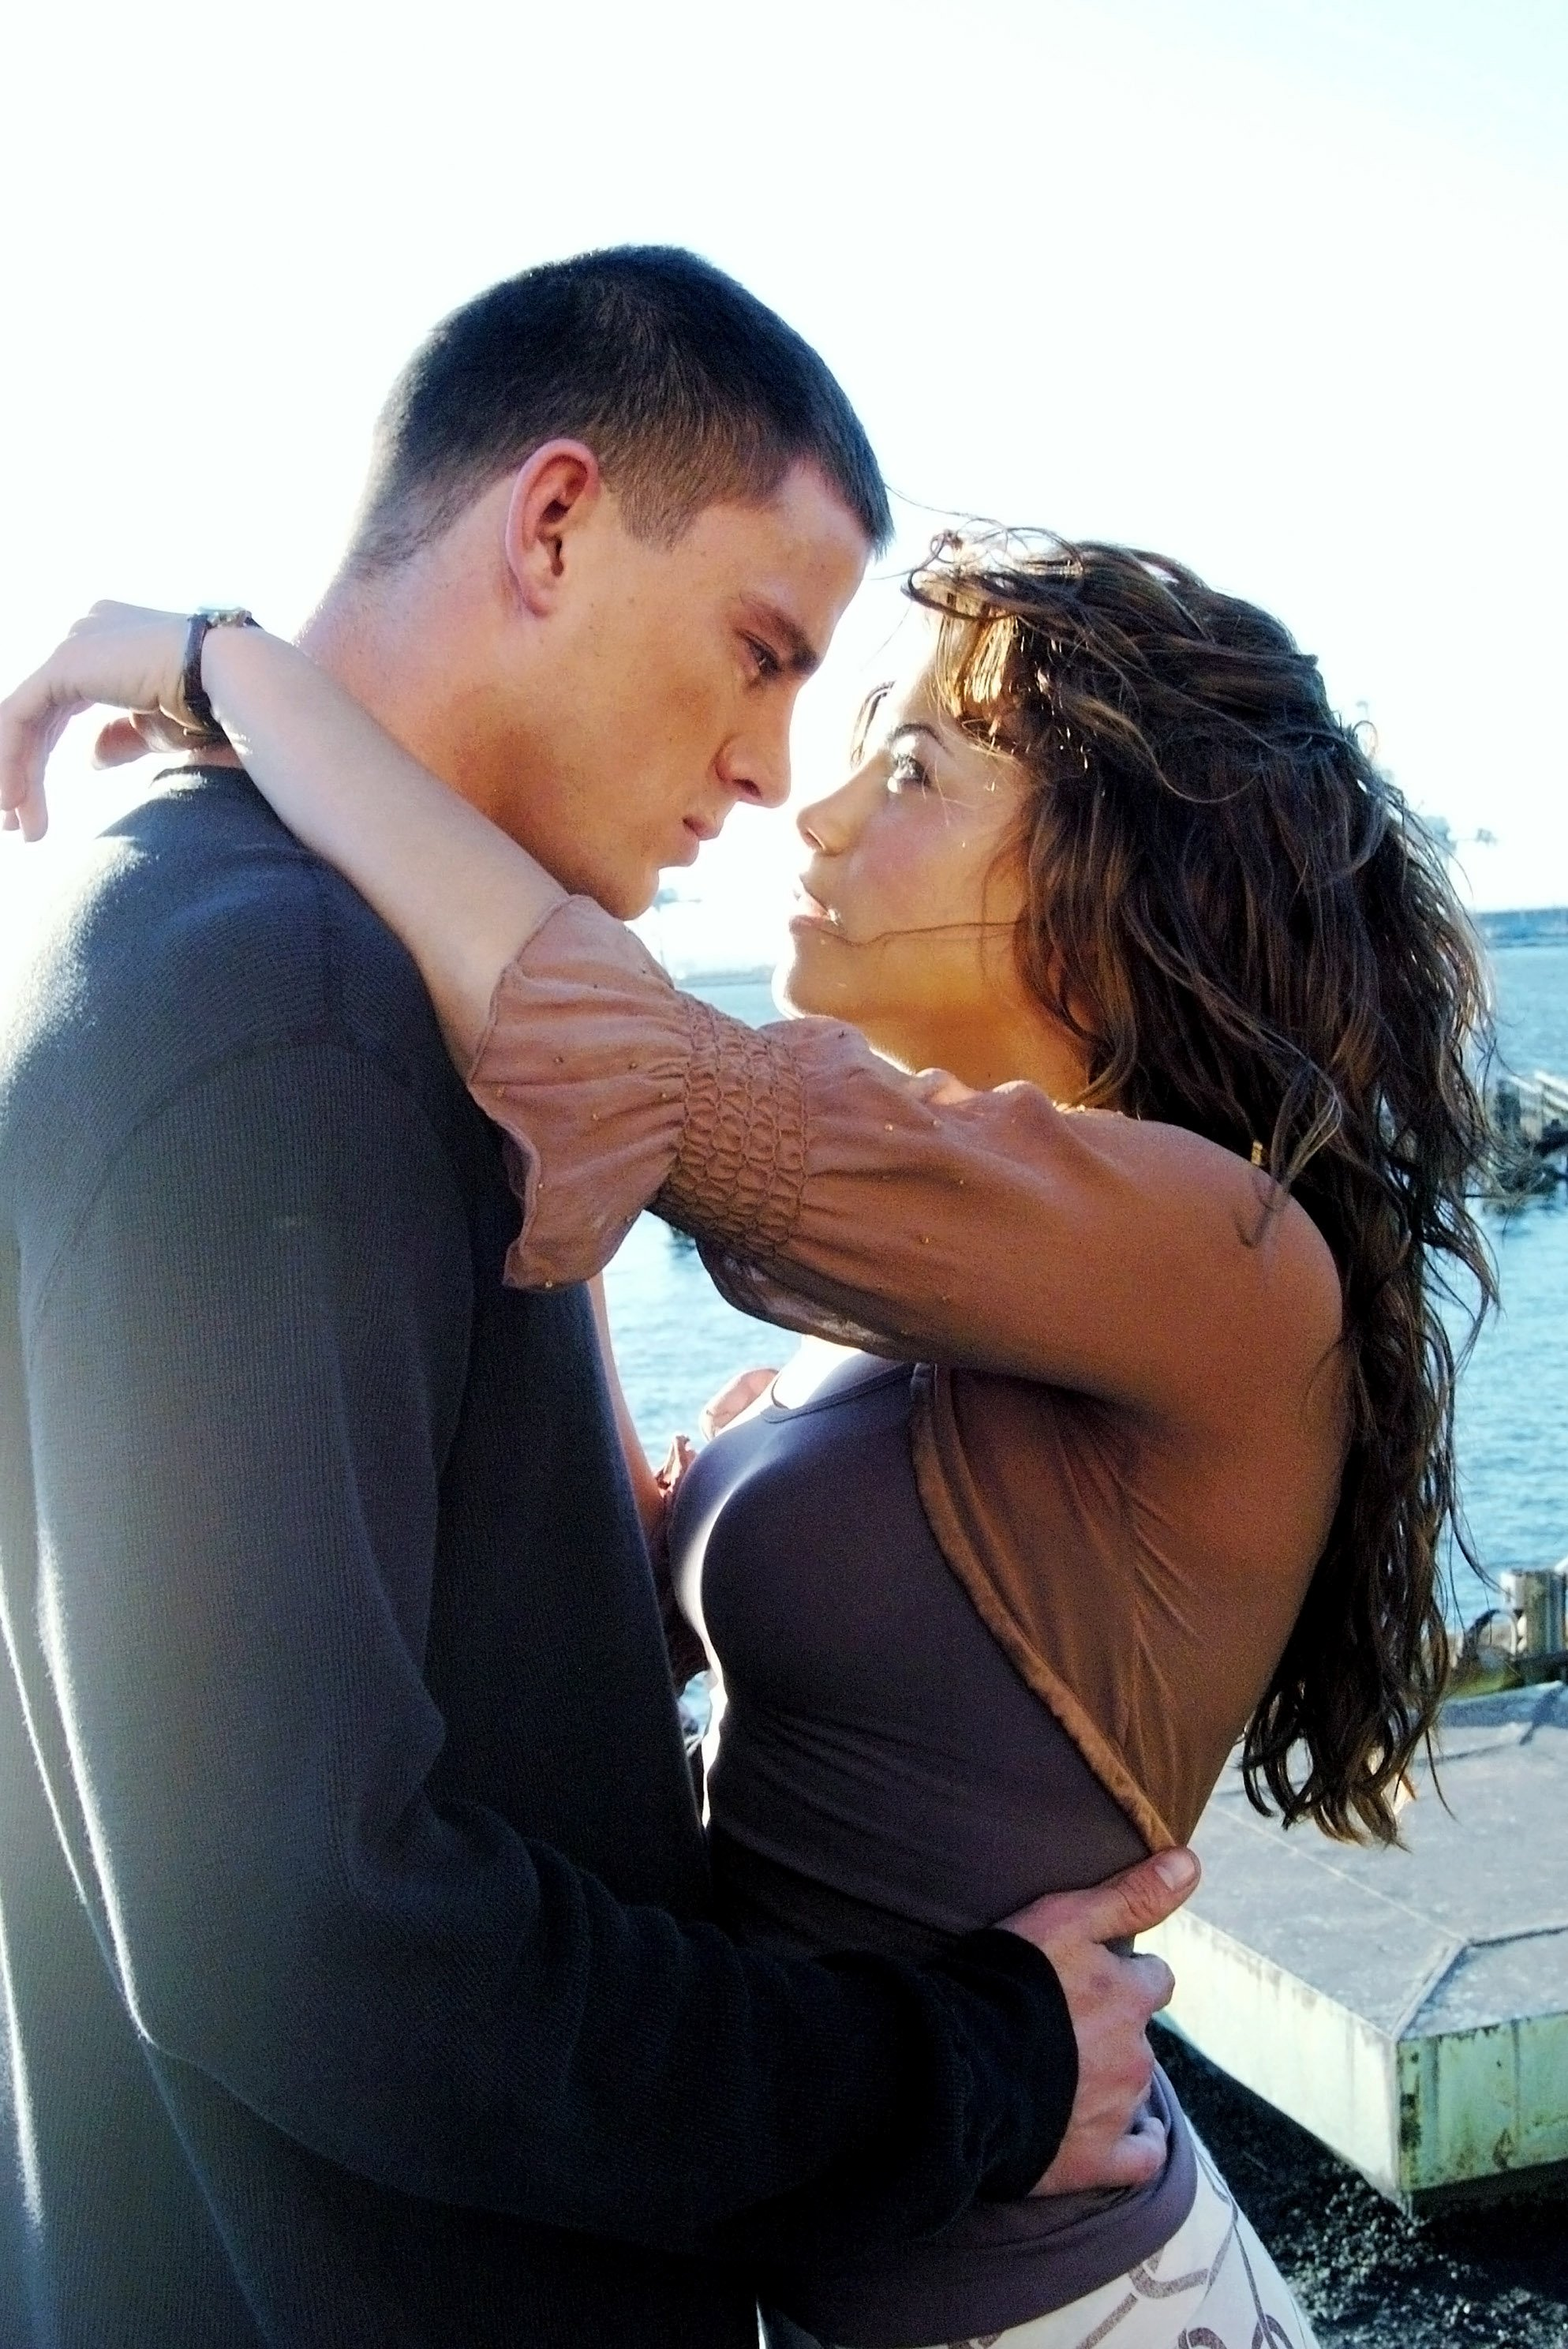 STEP UP, Channing Tatum, Jenna Dewan, 2006., Image: 98051223, License: Rights-managed, Restrictions: For usage credit please use; ©Touchstone Pictures/Courtesy Everett Collection, Model Release: no, Credit line: Profimedia, Everett